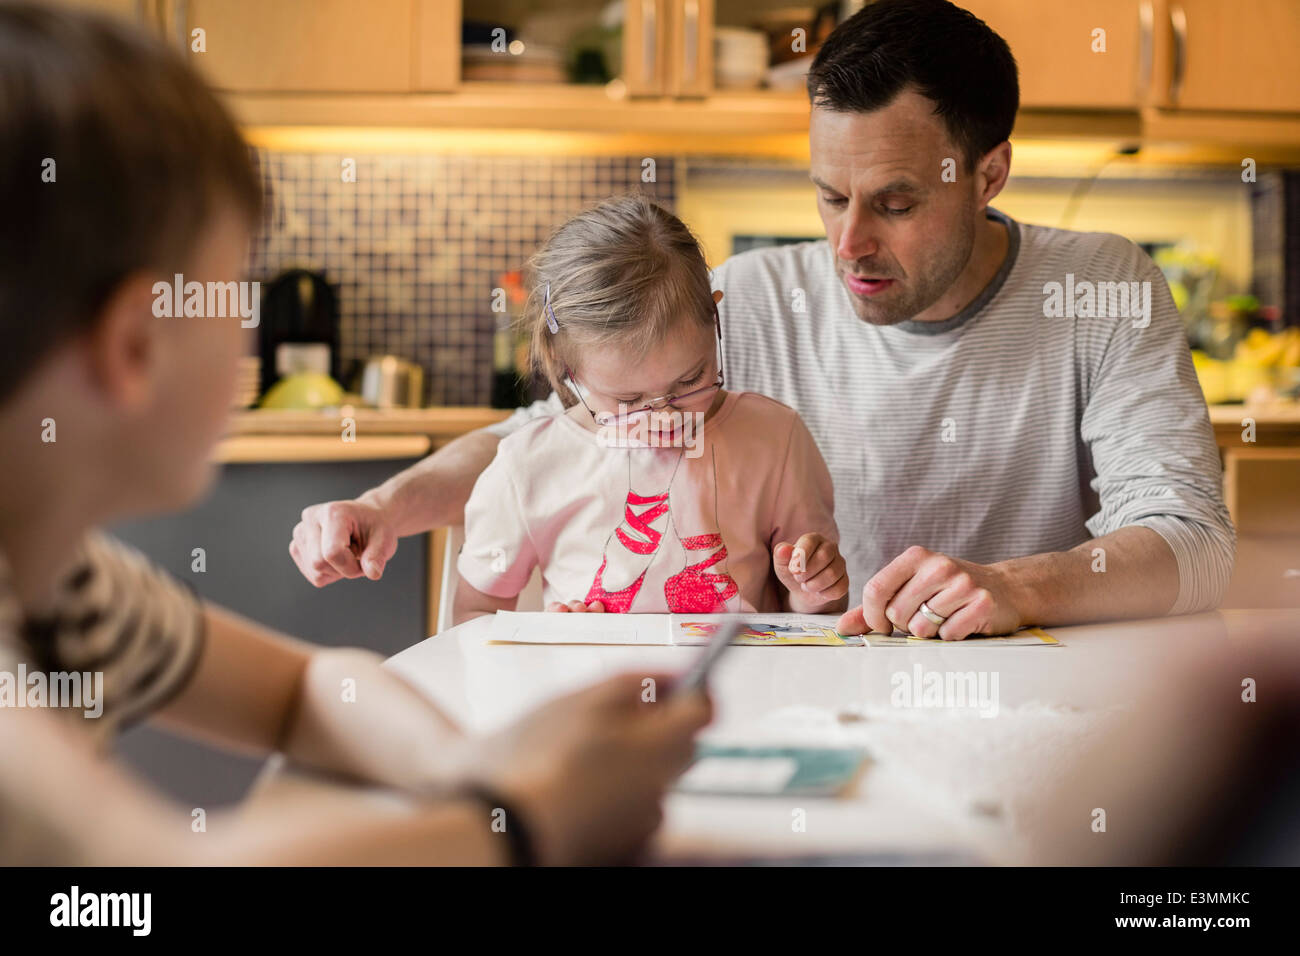 Father teaching daughter with son in foreground at home - Stock Image